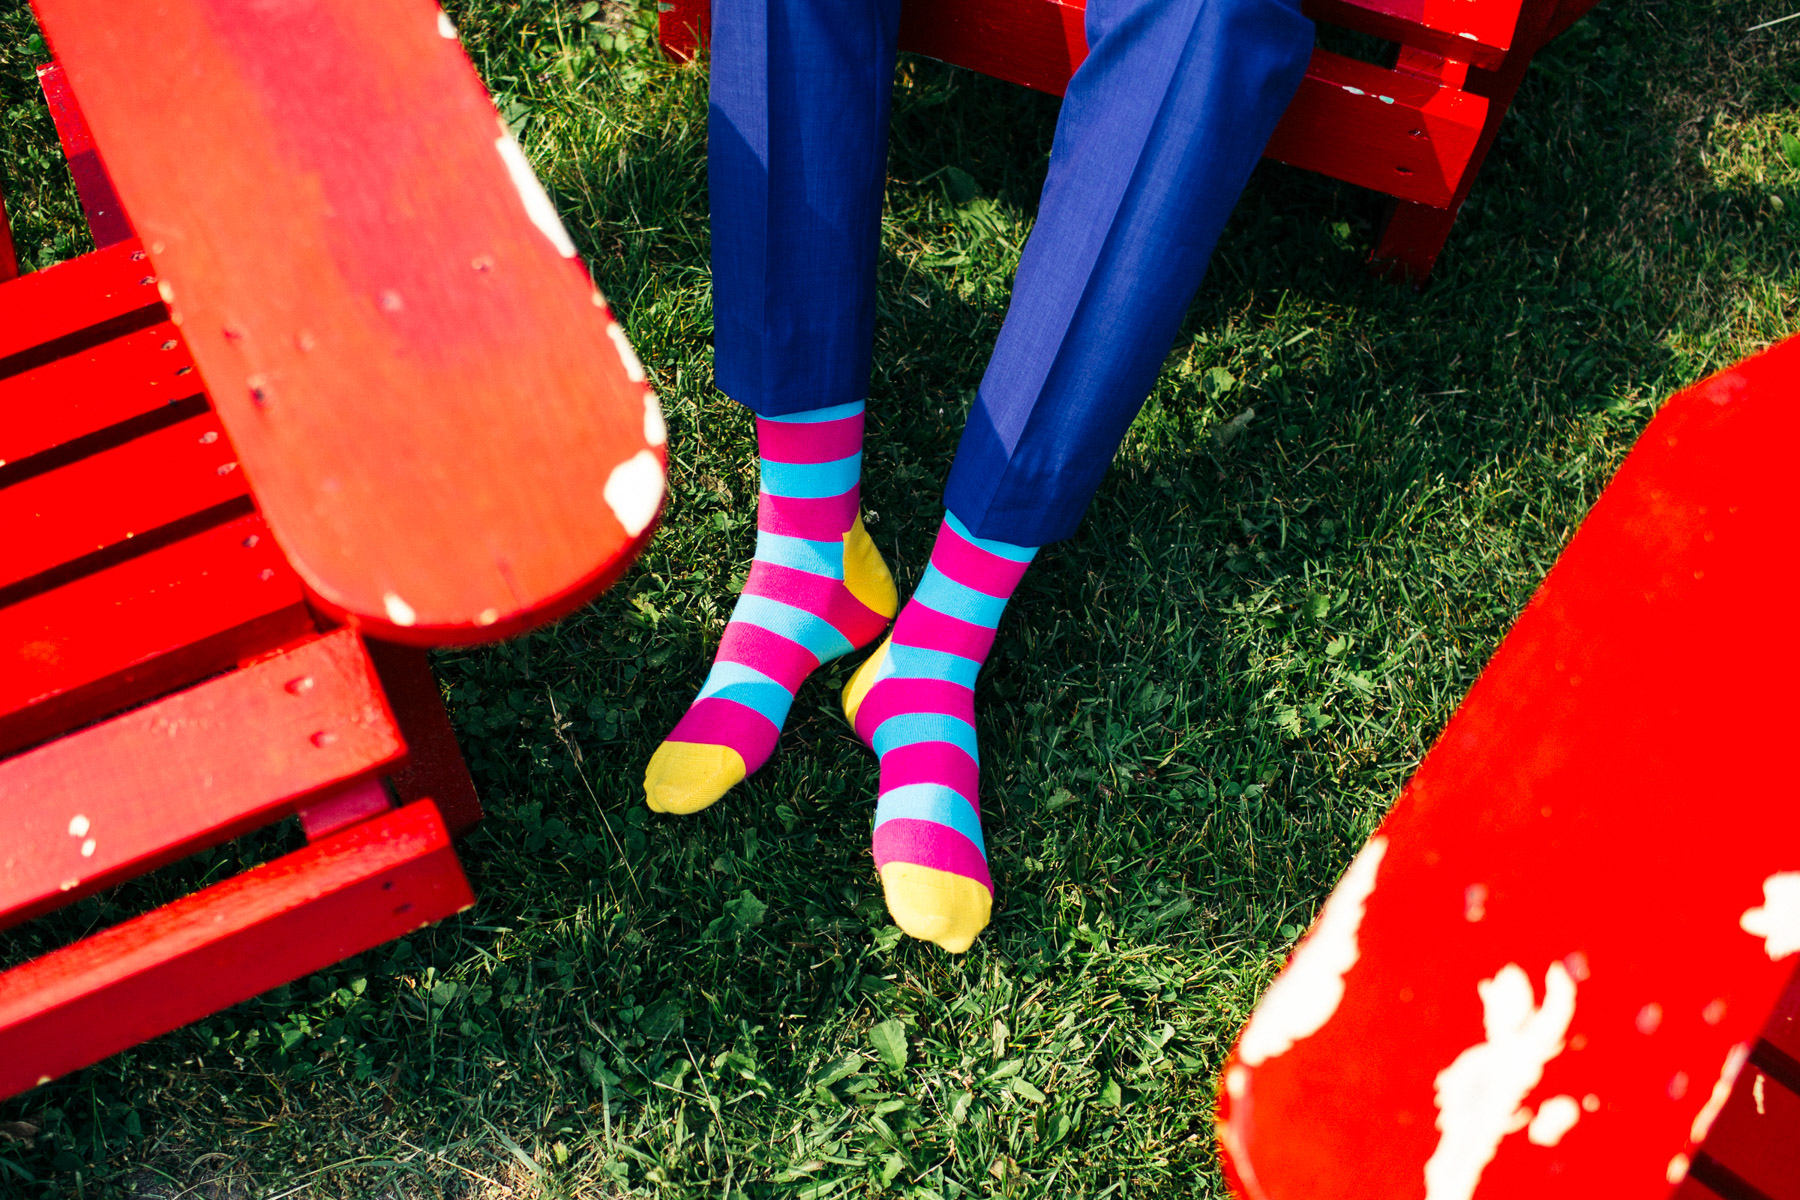 Colorful socks on a grass lawn with red chairs during summer in Nova Scotia, Canada.